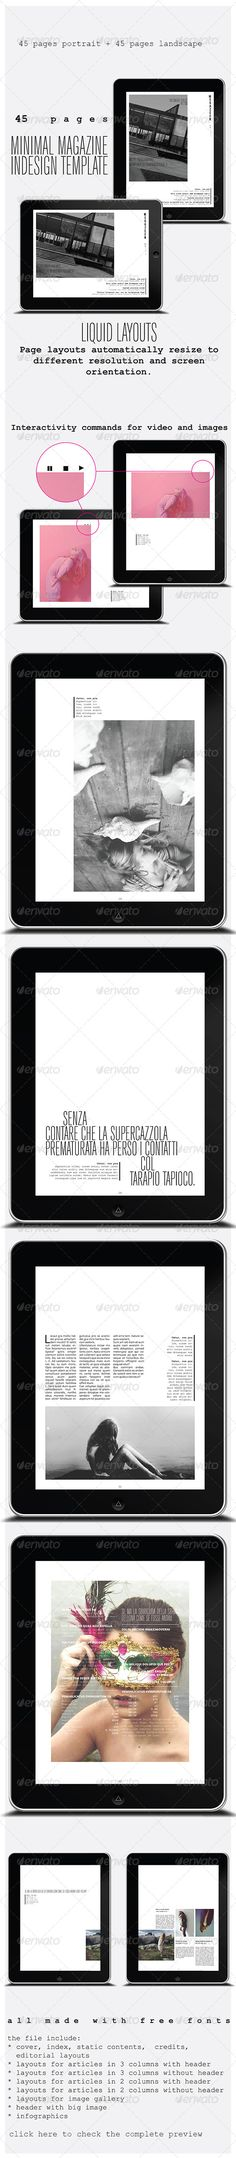 40 Pages Minimal Magazine For Tablet  #GraphicRiver         InDesign iPad tablet magazine template.